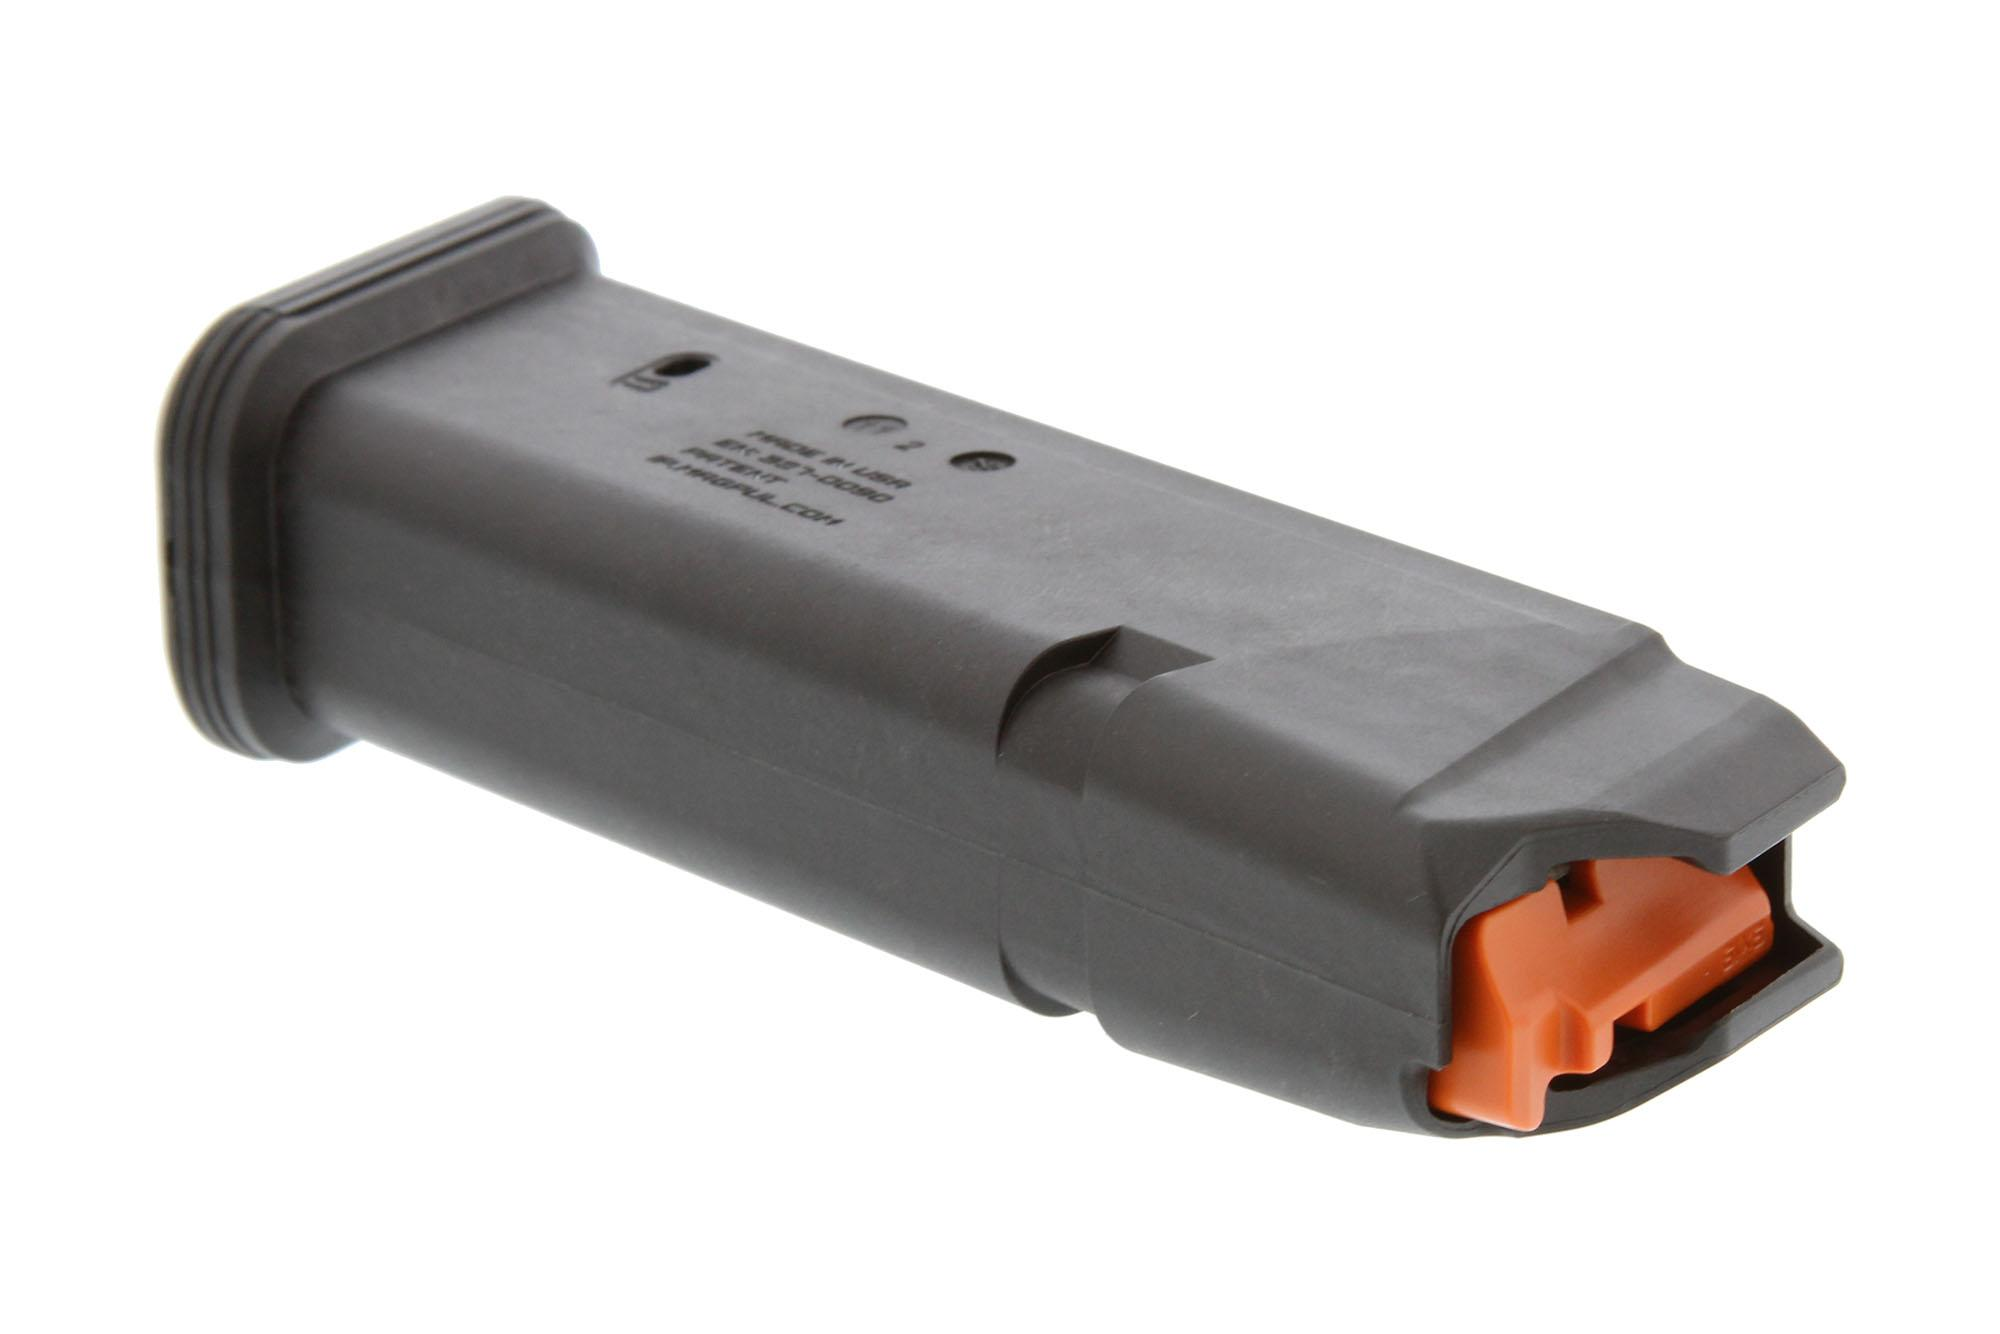 The Magpul GL9 Glock G17 Magazine has a high visibility orange follower